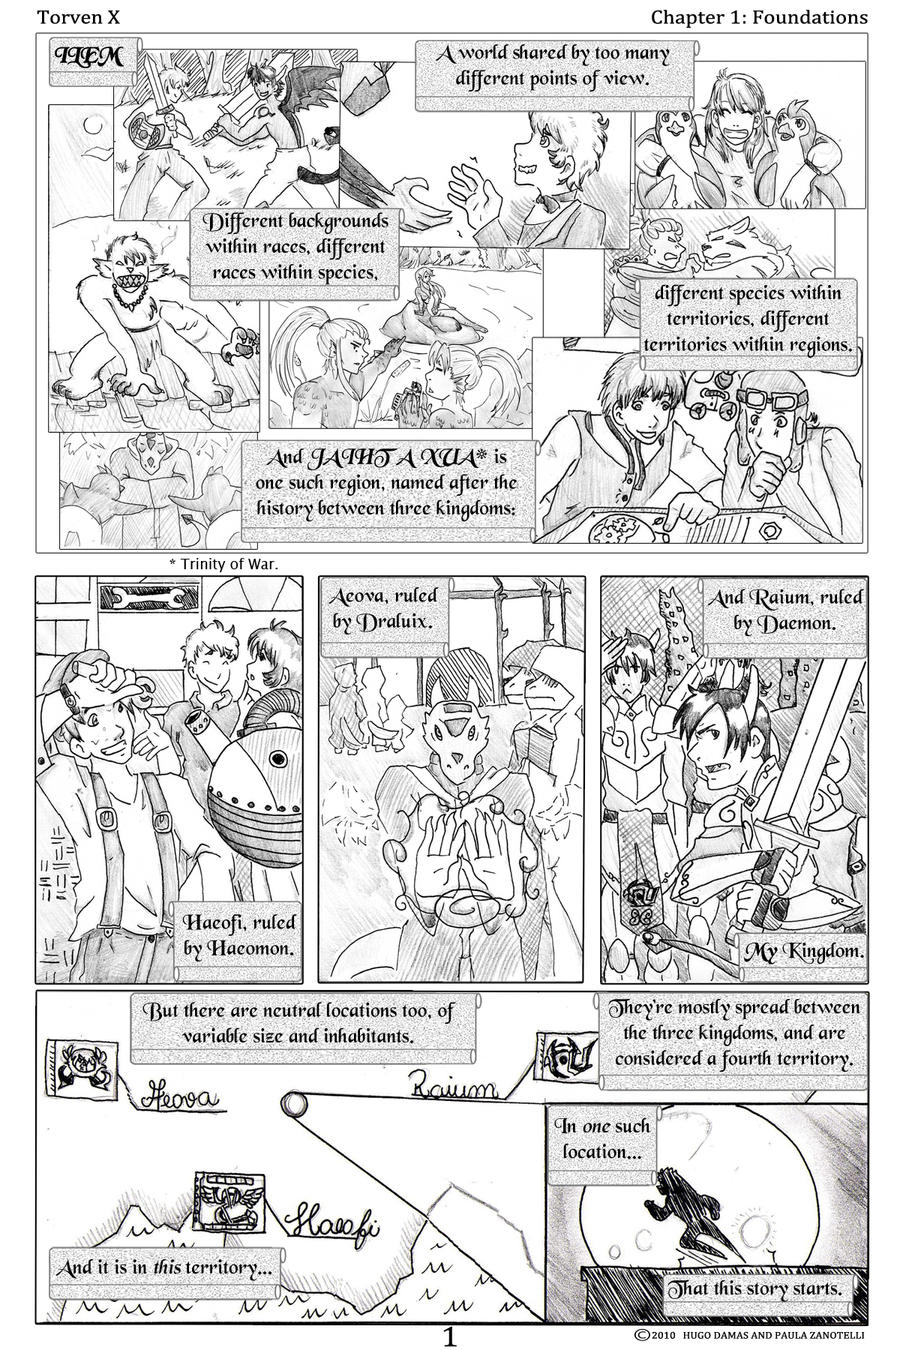 Torven X - Page 1 - Low Res